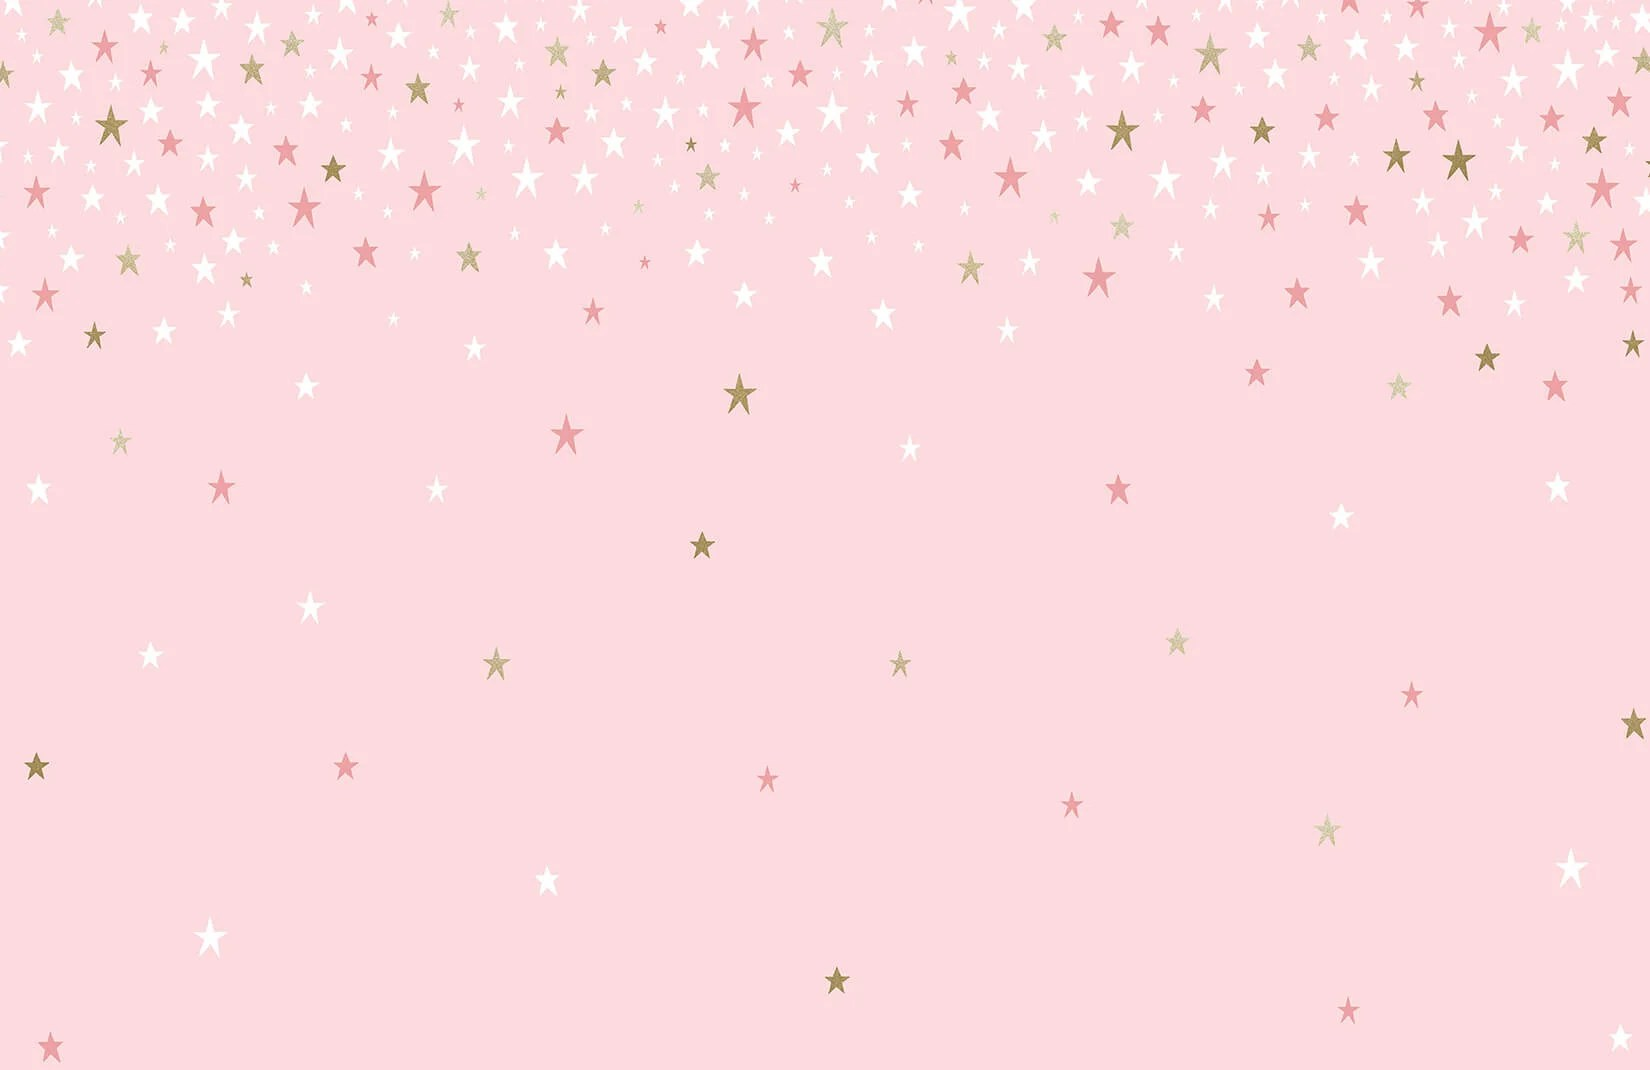 french kitchen island rooms to go tables falling star pink wallpaper mural - murals